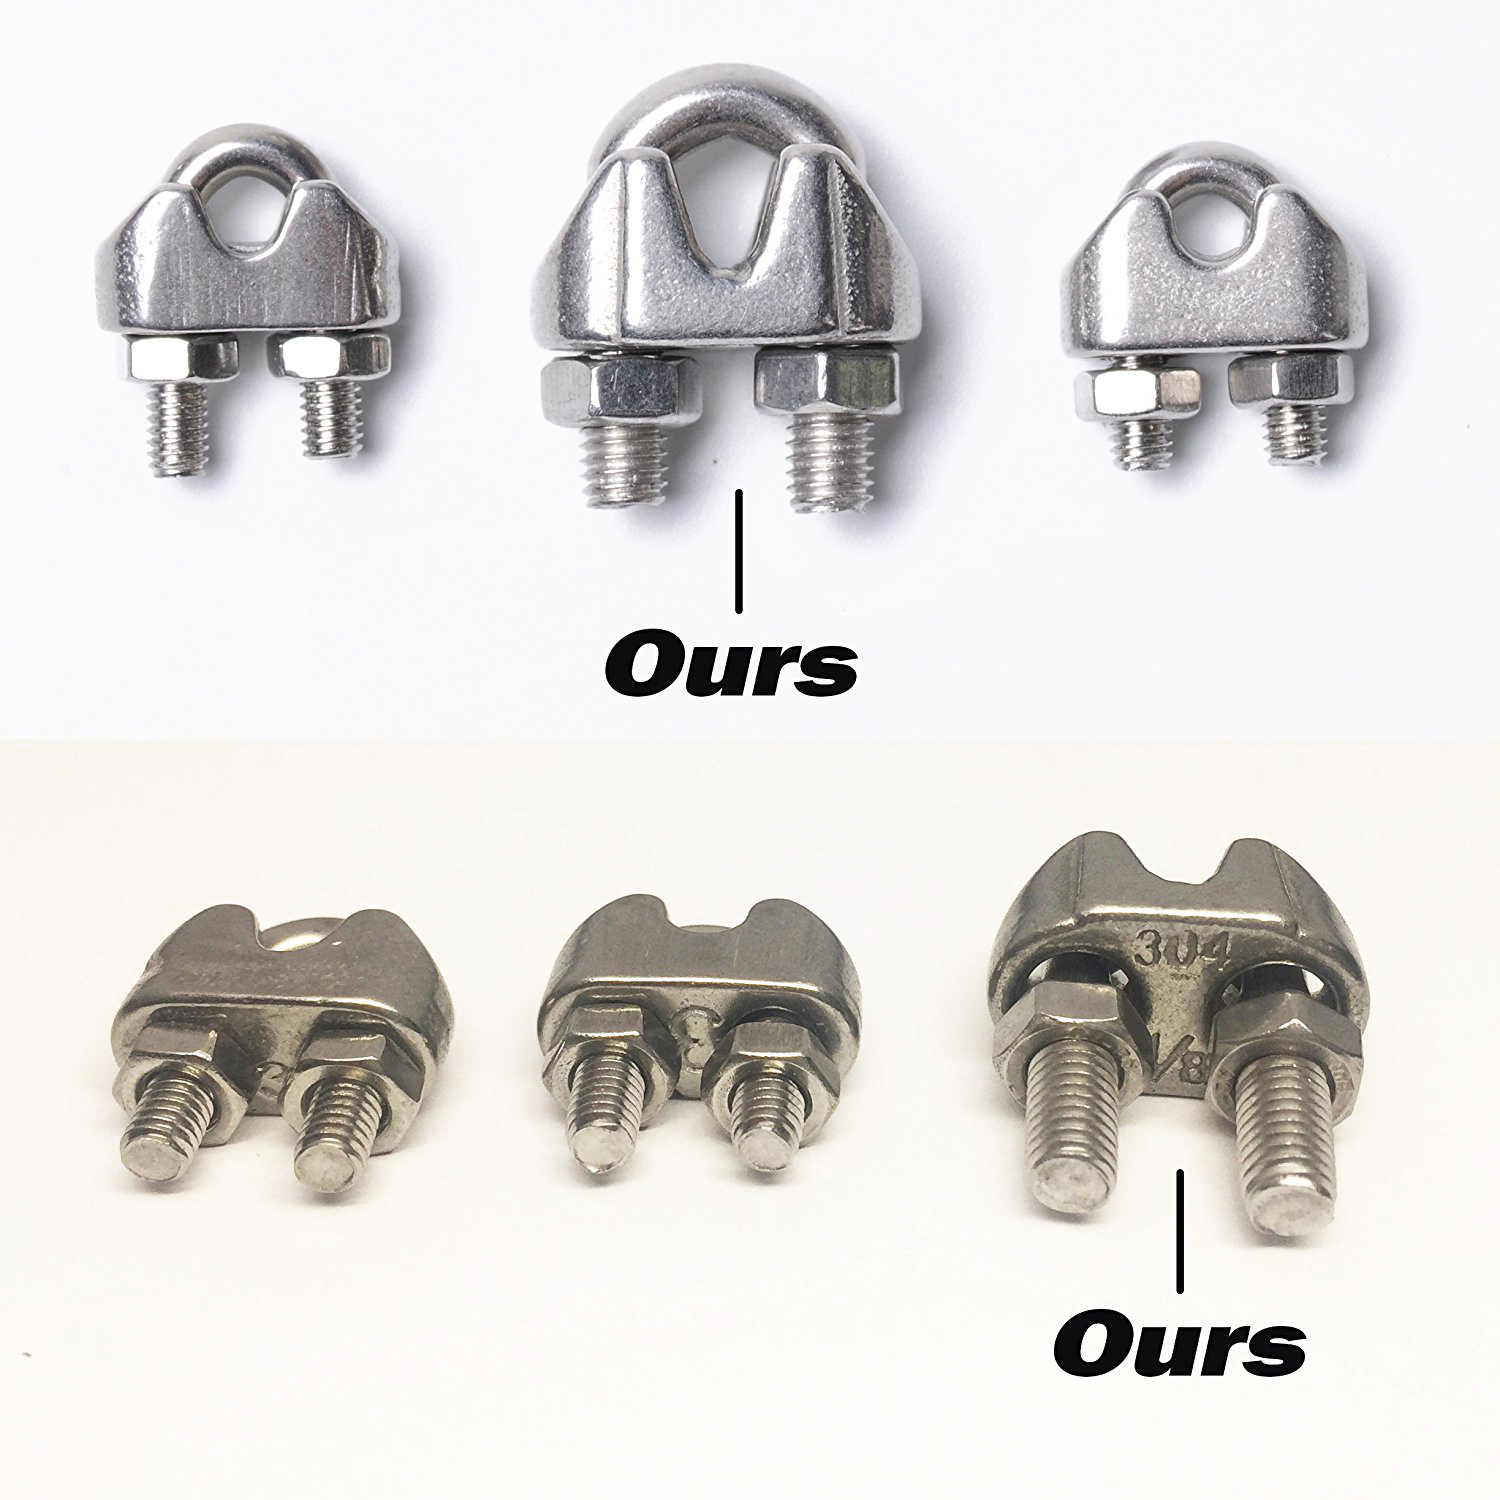 цена на 4-Pcs Turnbuckle/Tension(Eye&Hook, M6), 16-Pcs 1/8 Inch Wire Rope Cable Clip/Clamp(M3), 8-Pcs Thimble(M3), Stainless Steel Kit